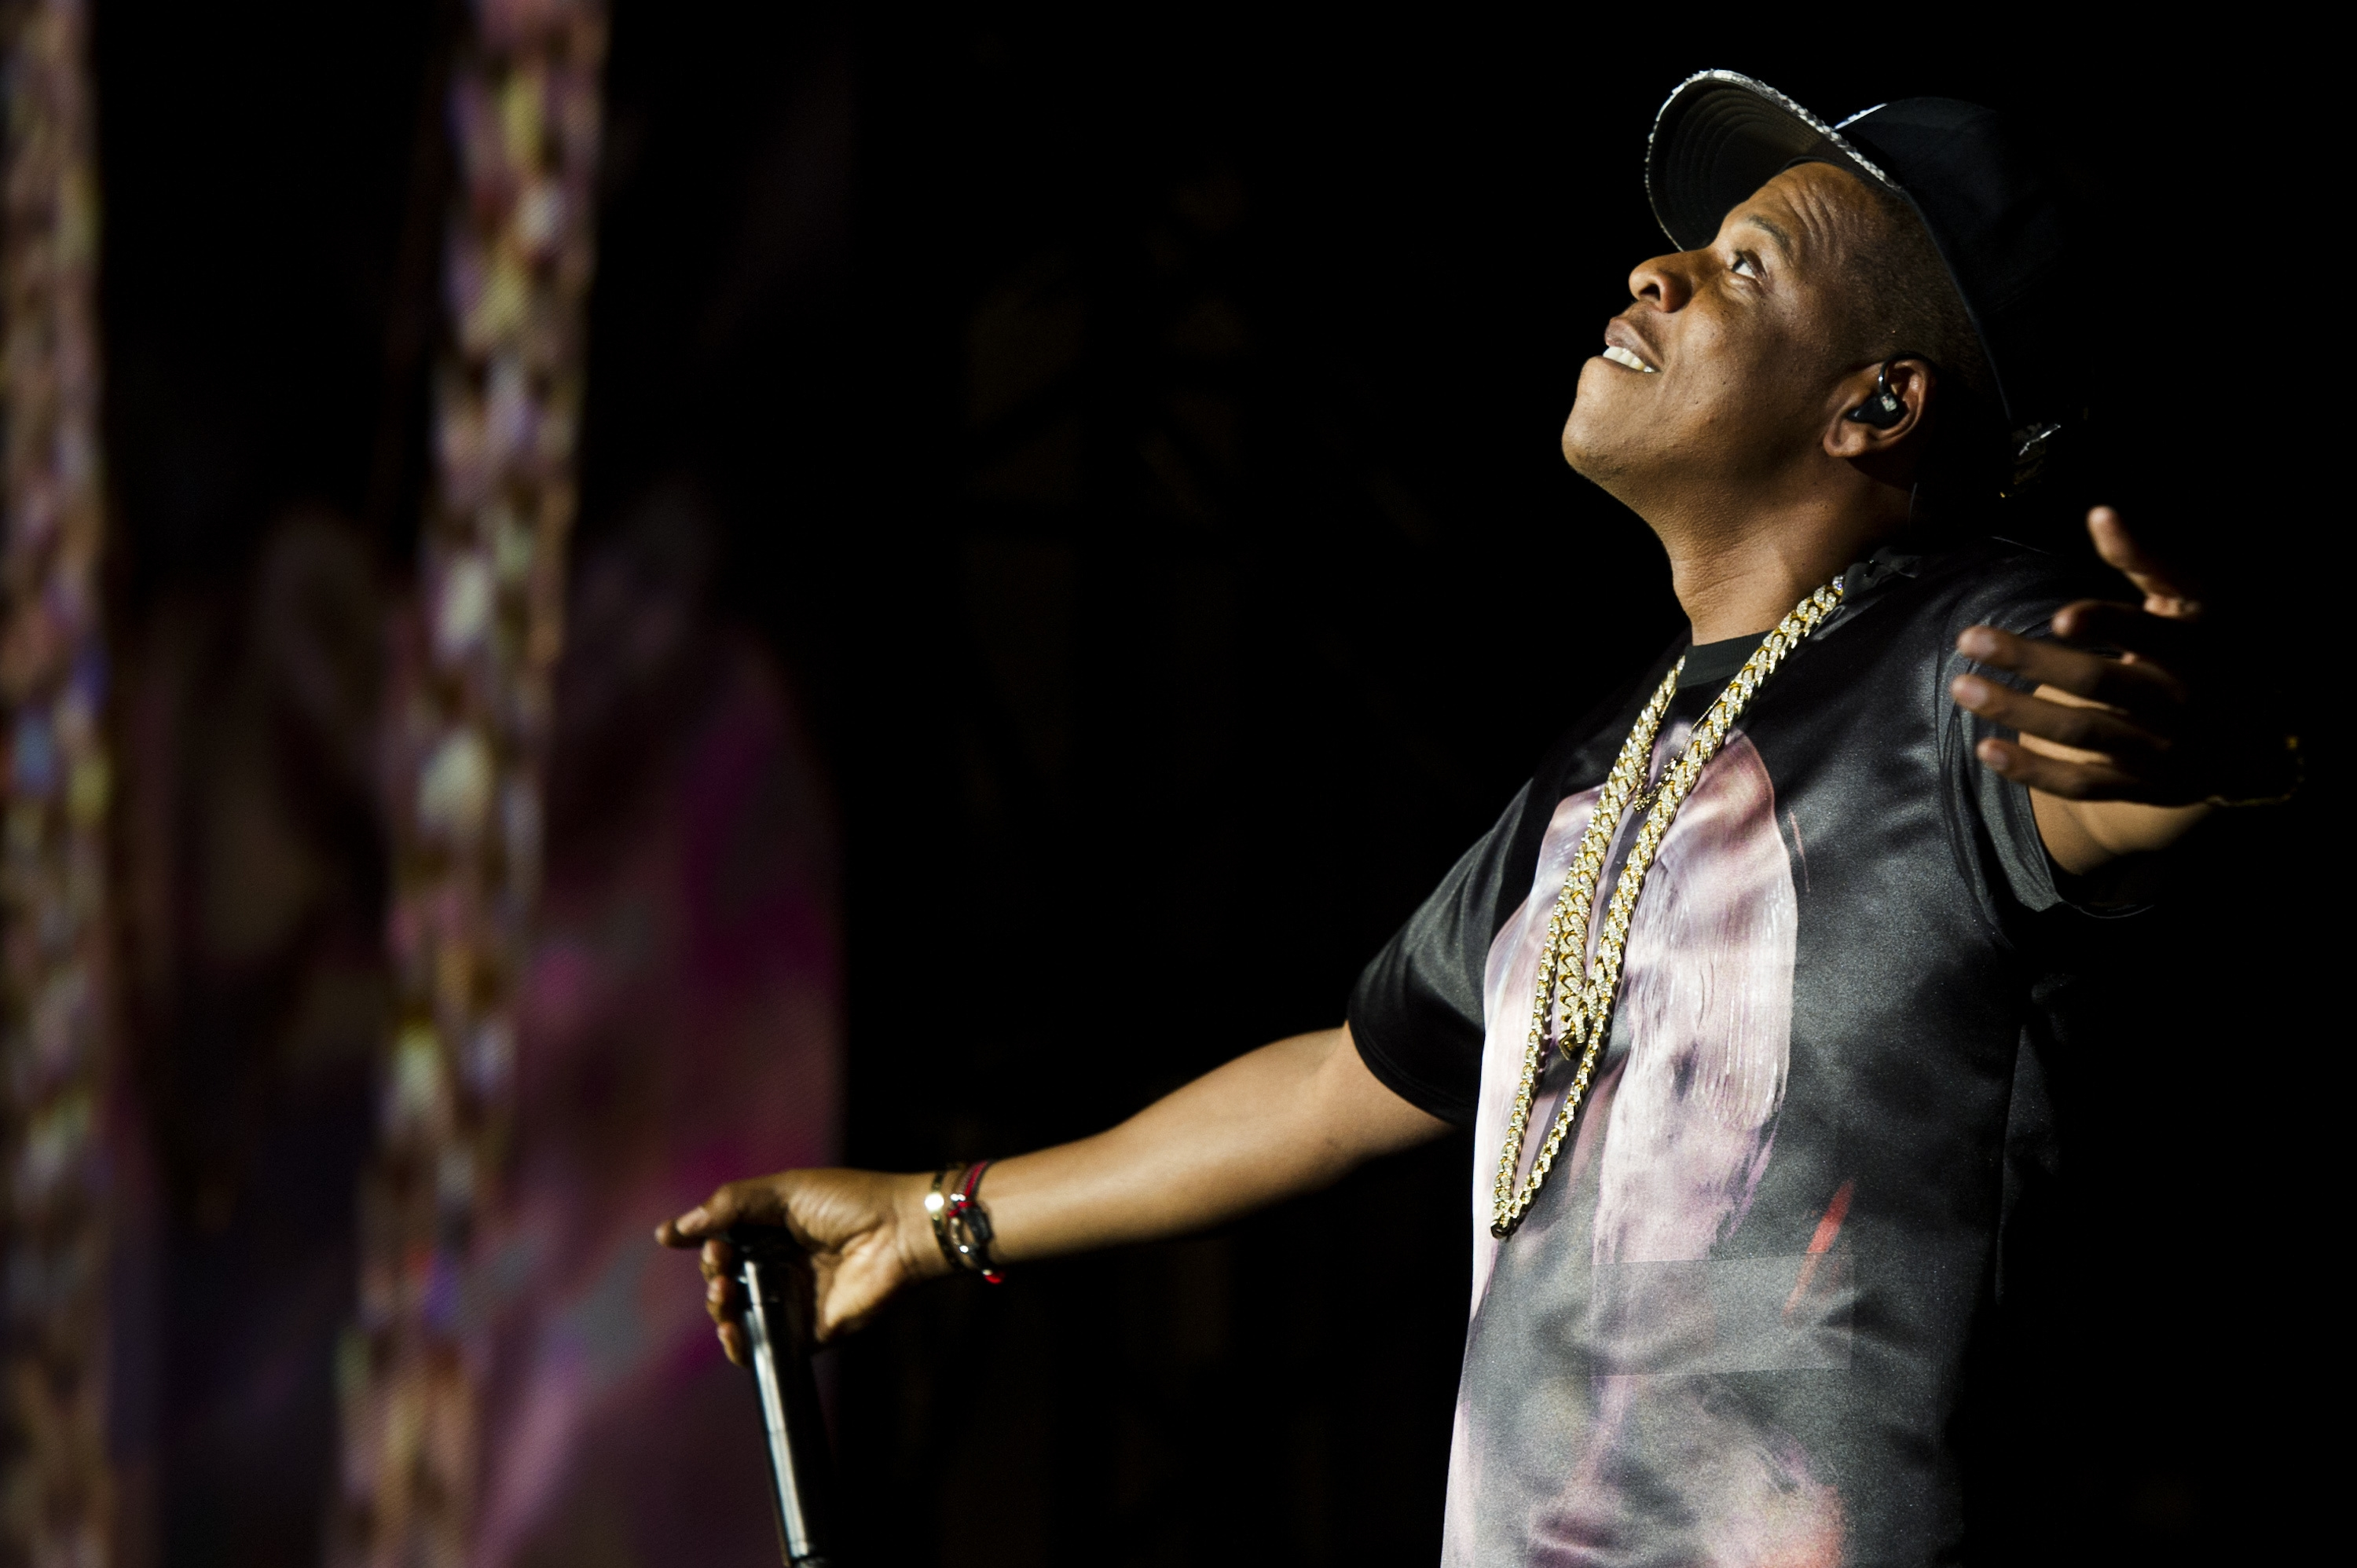 Jay Z will perform at the First Niagara Center Jan. 30.